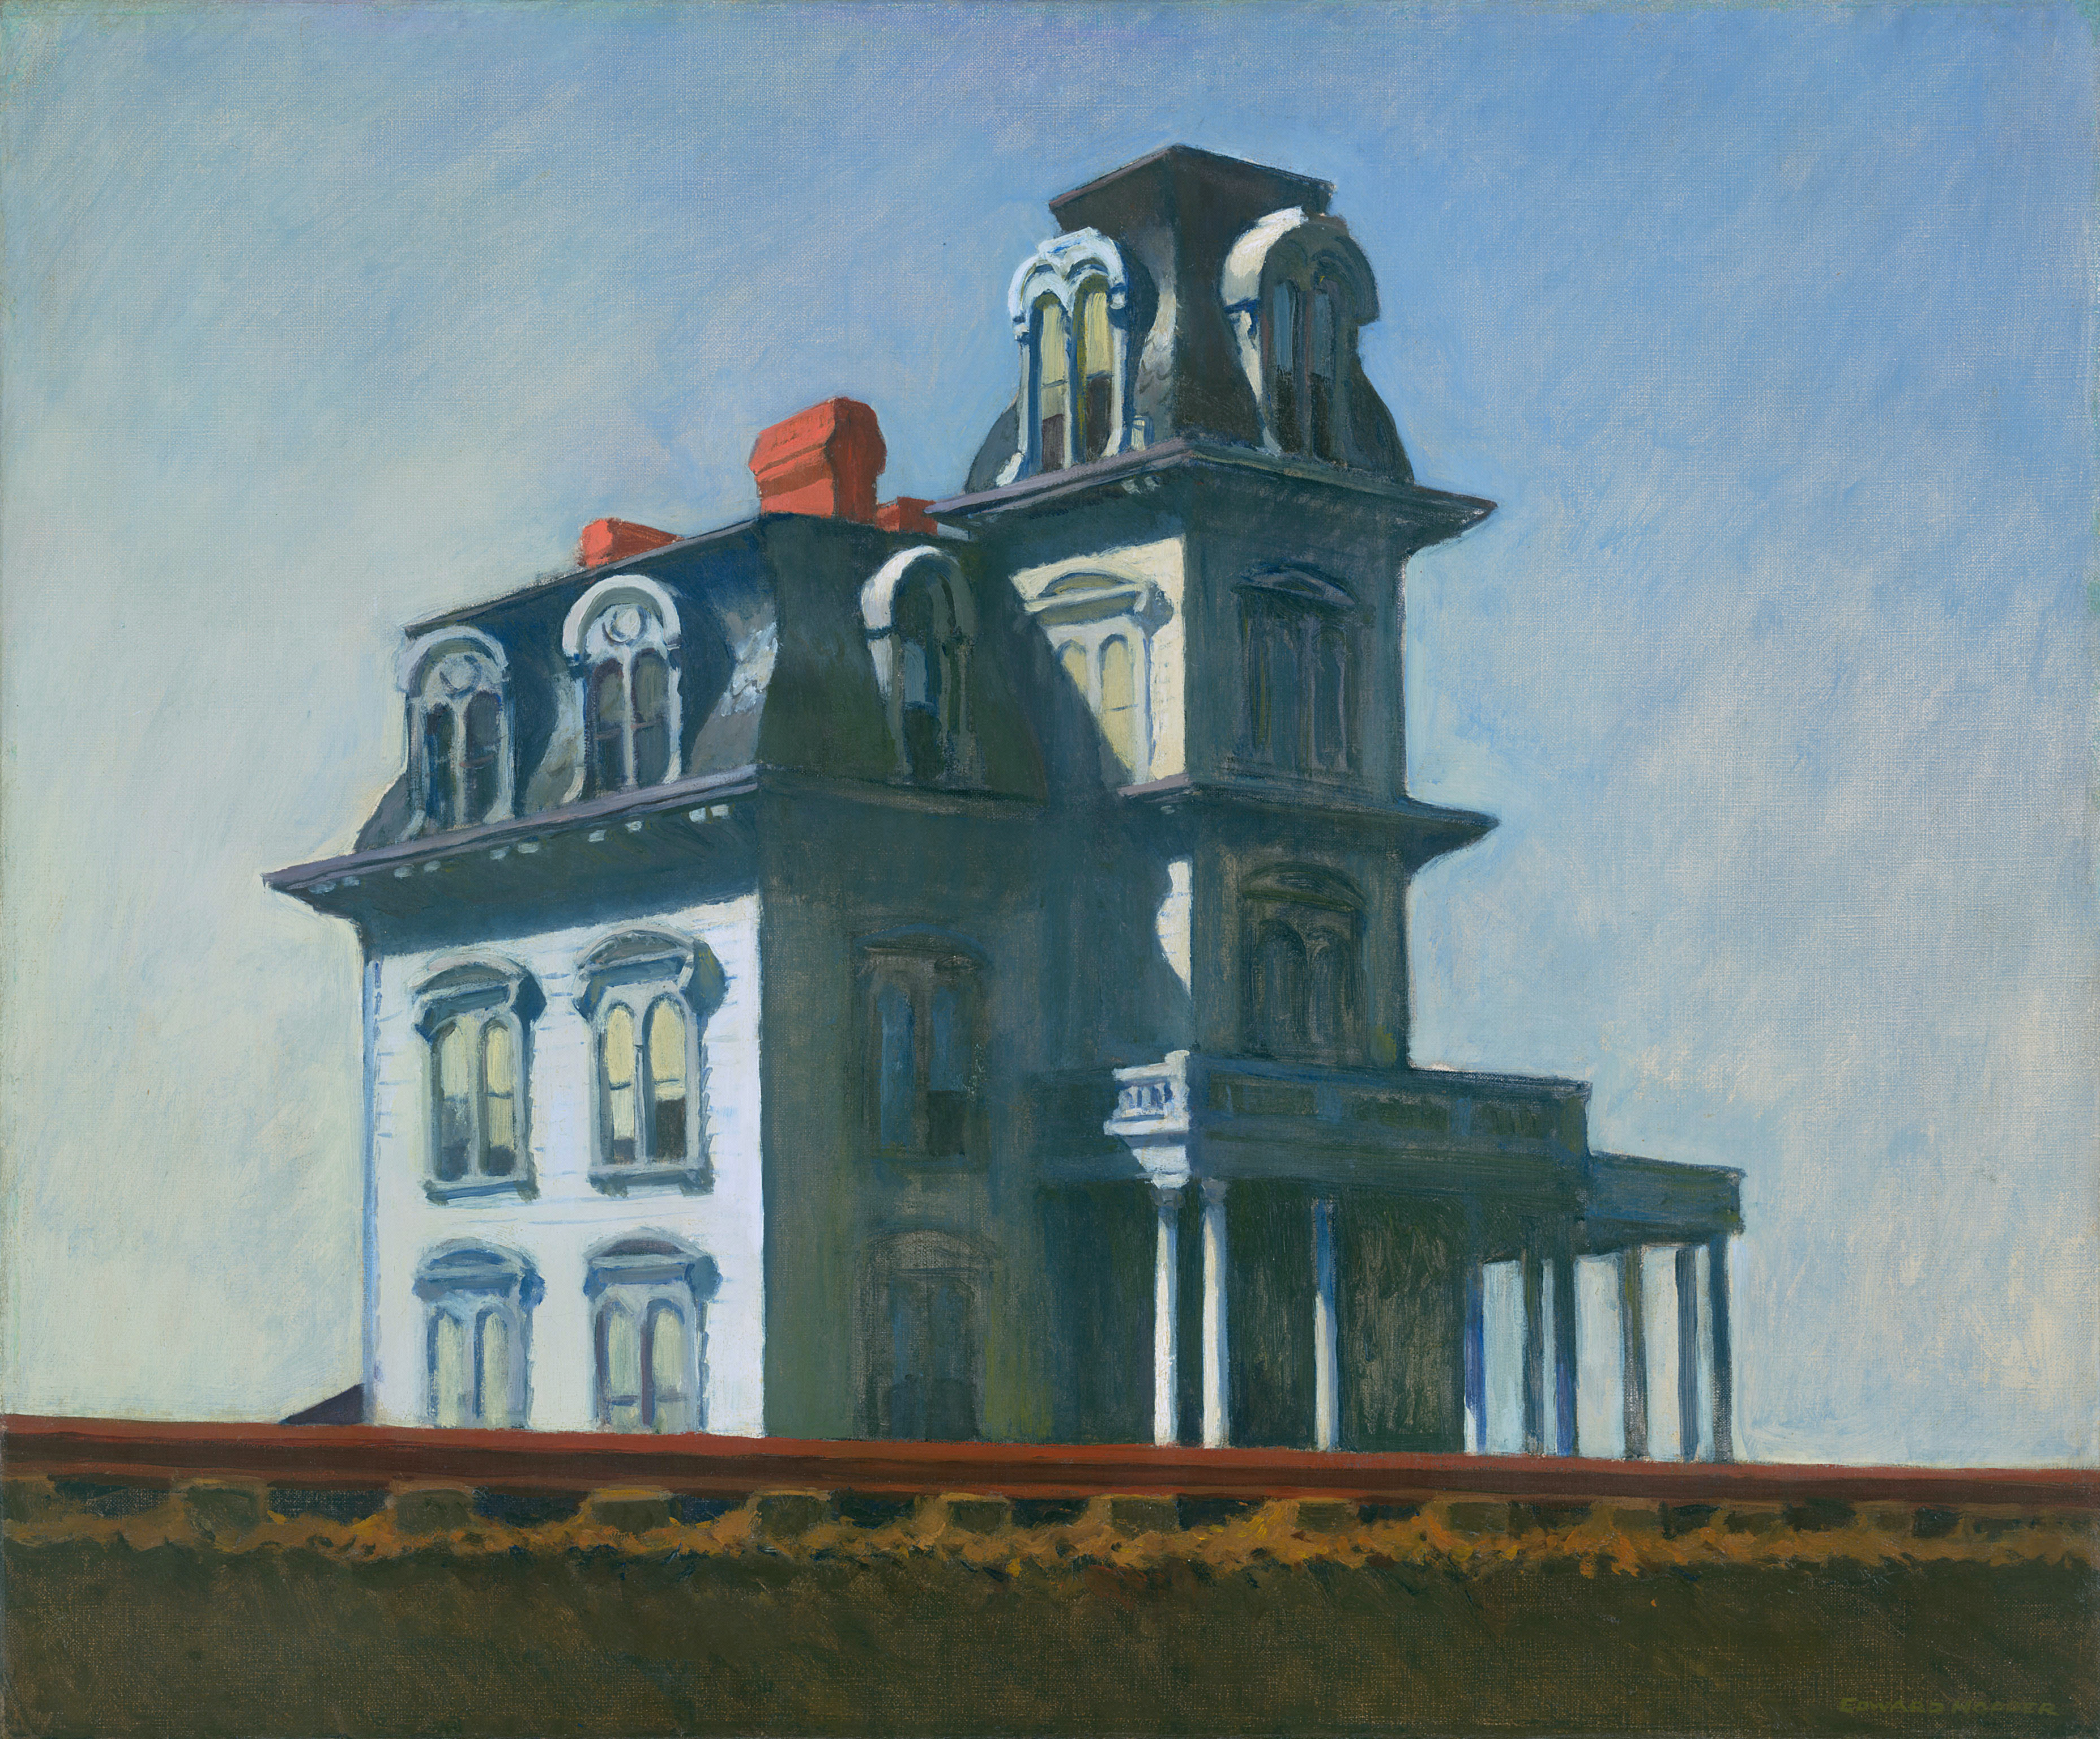 The_House_by_the_Railroad_by_Edward_Hopper_1925.jpg